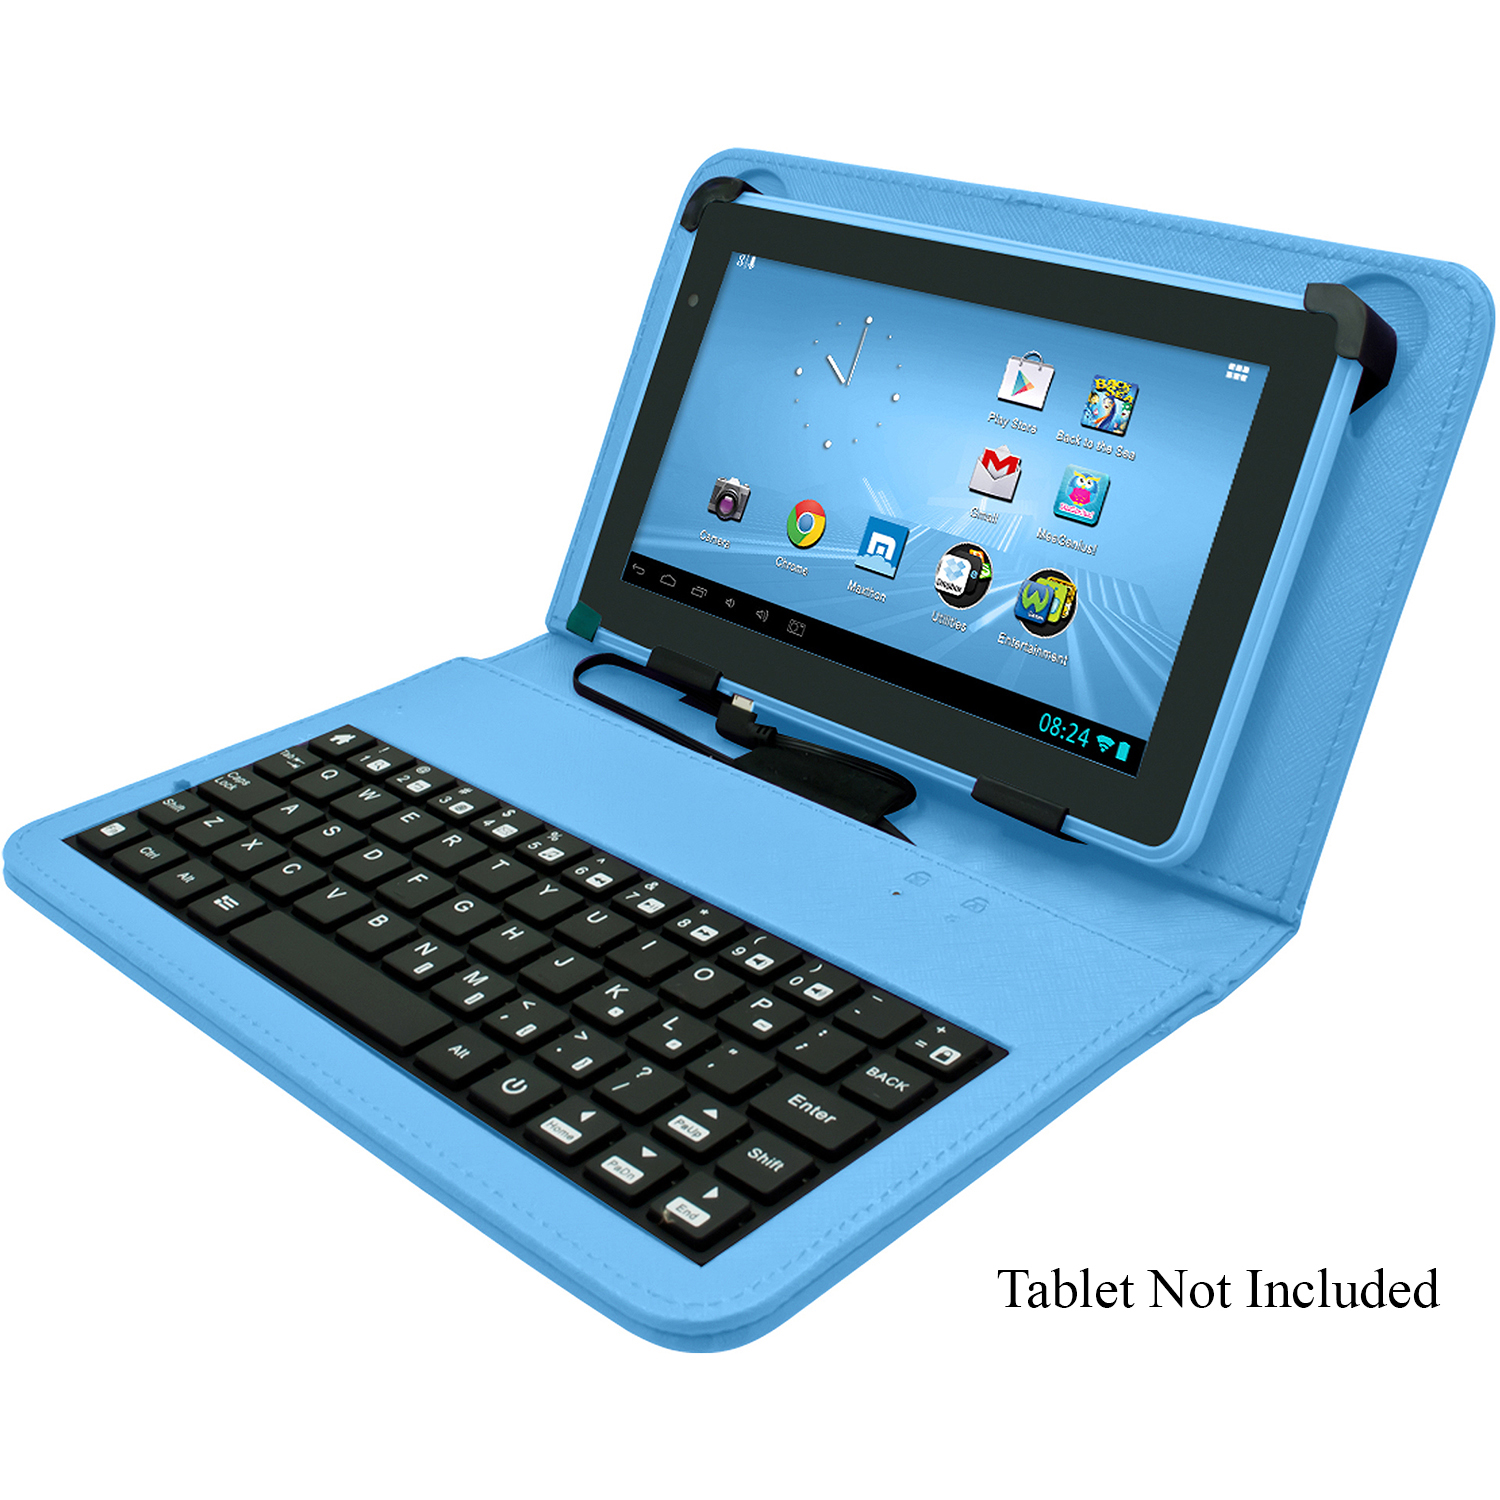 "Refurbished Digital2 ACK700A 7"" Tablet Leatherette Folio Case Cover w/microUSB Keyboard-Blue"